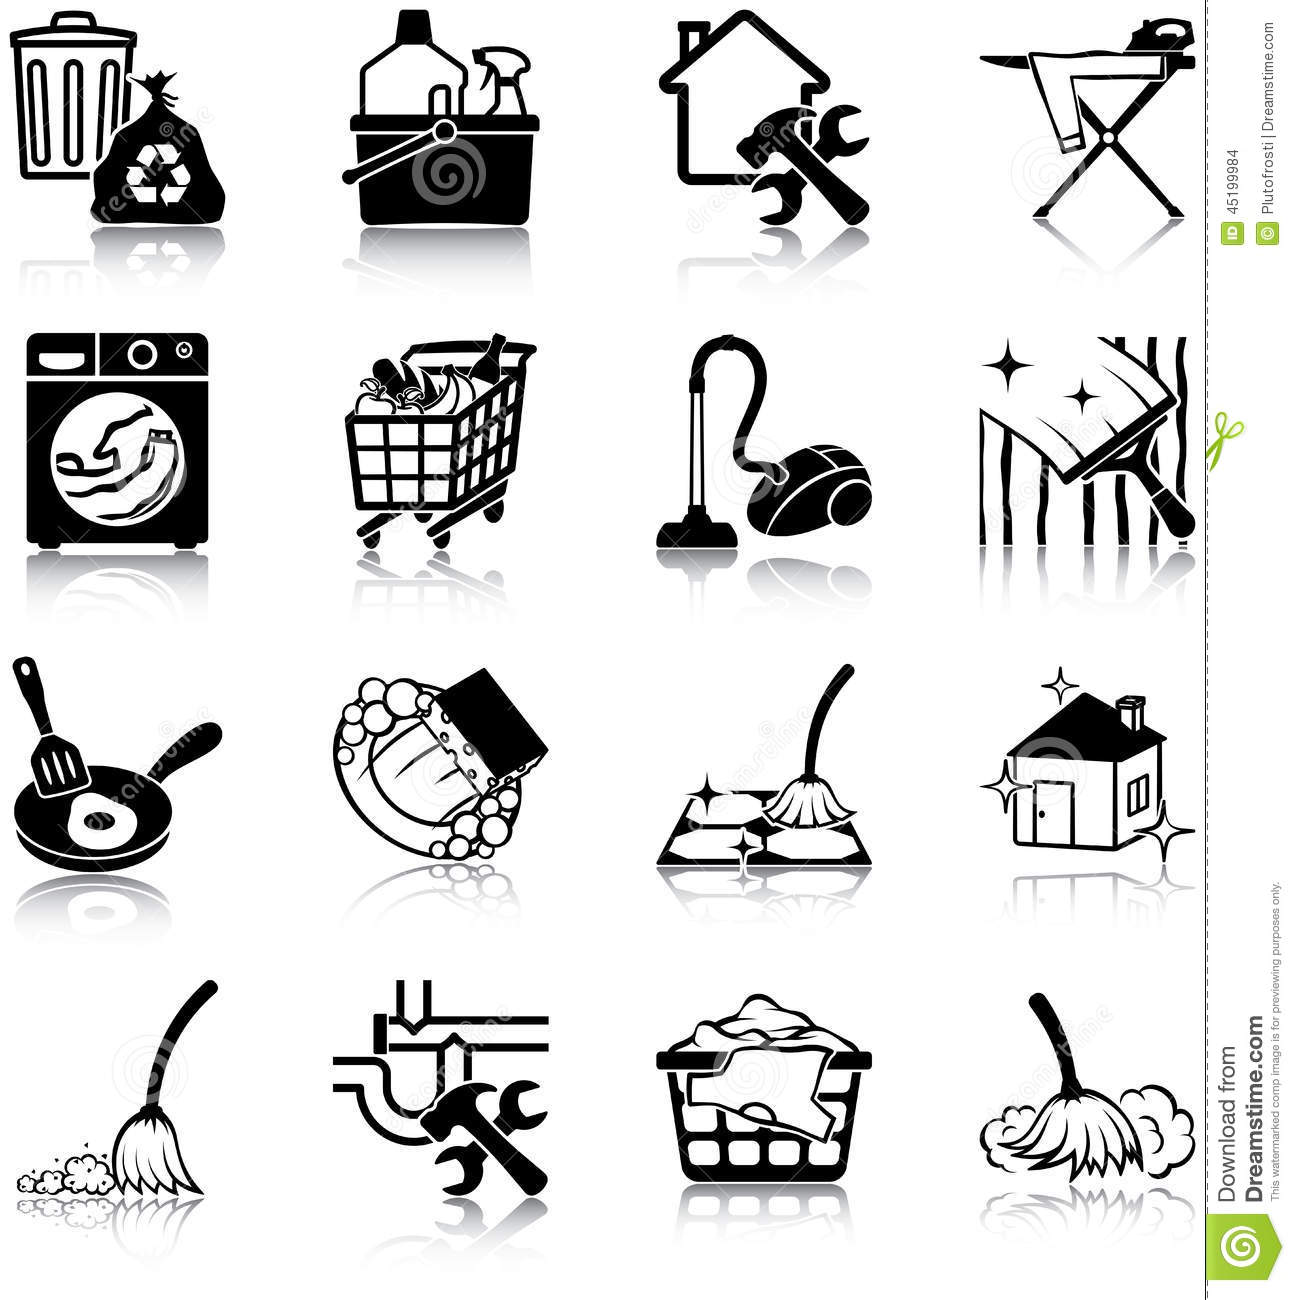 Housekeeping Cartoons Illustrations Amp Vector Stock Images